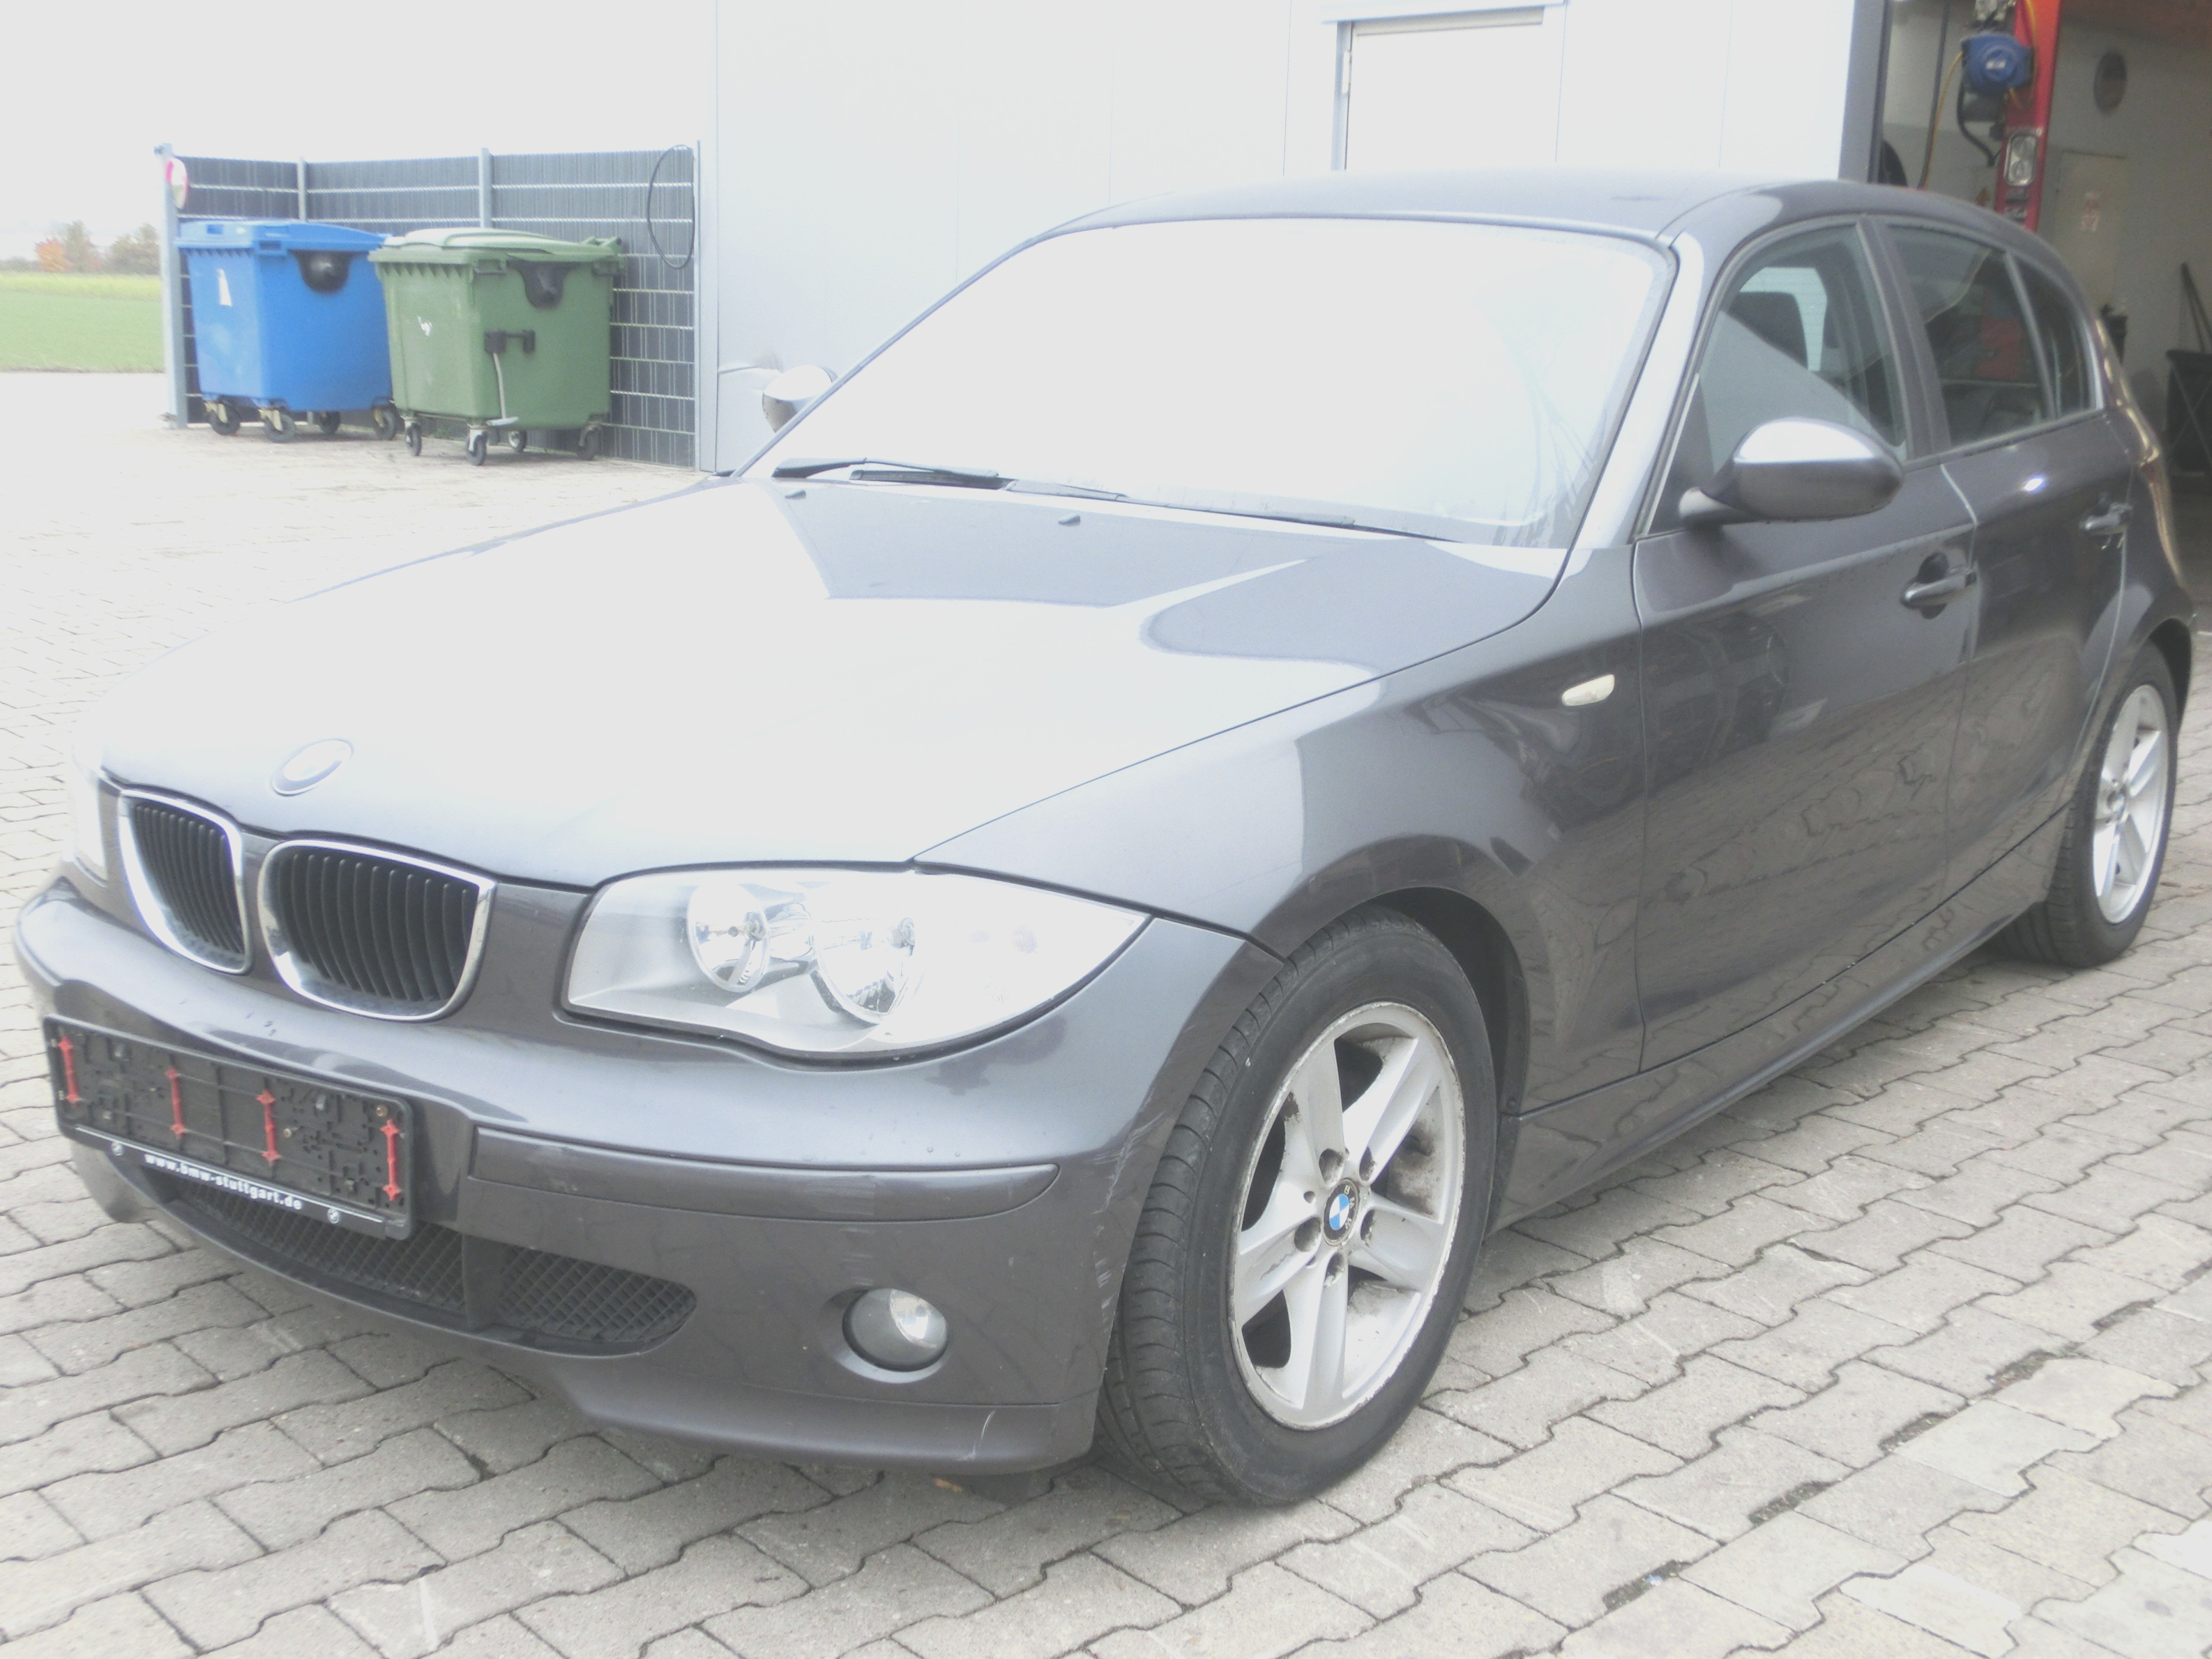 Reliable Chevrolet Service Release Date and Specs Reliable Chevrolet Beautiful Bmw E87 1er 04 07 120d